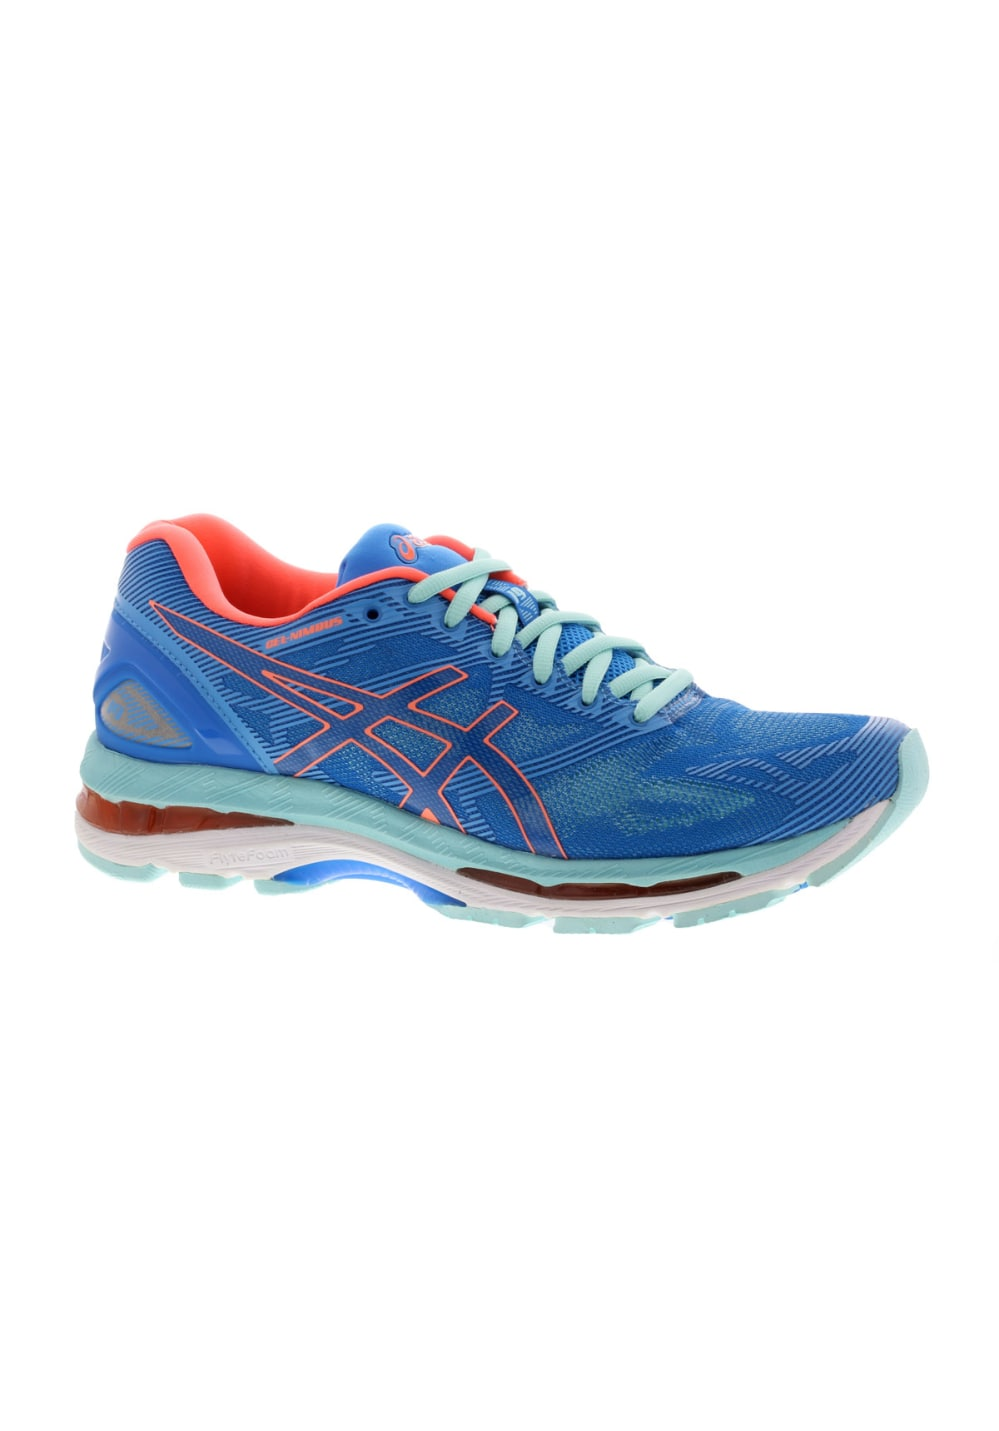 asics gel nimbus 10 or